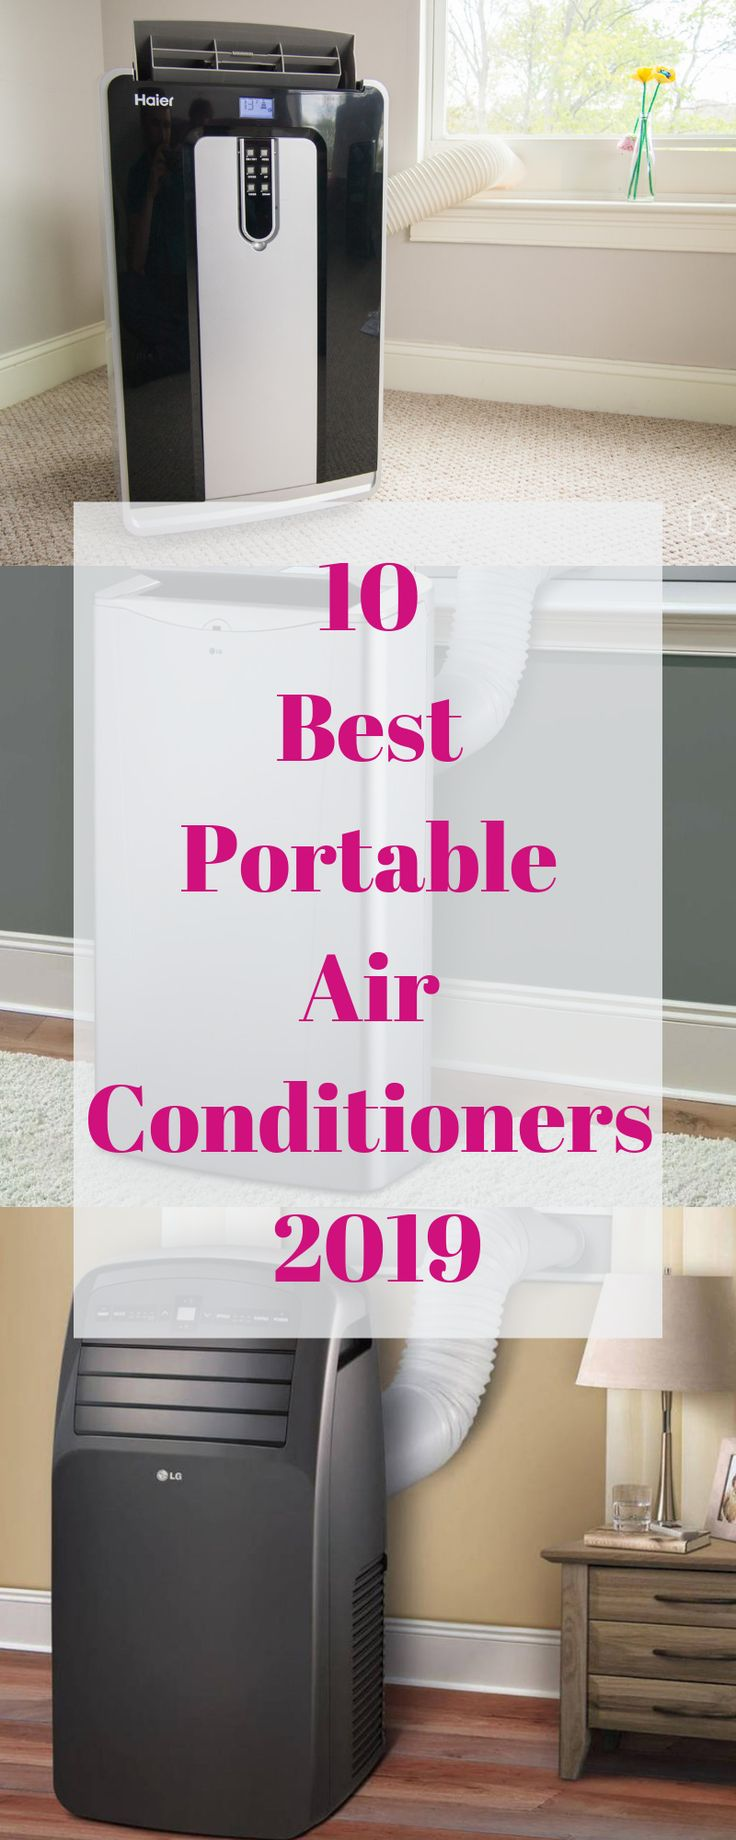 Best Portable Air Conditioner 2019 The Most Efficient